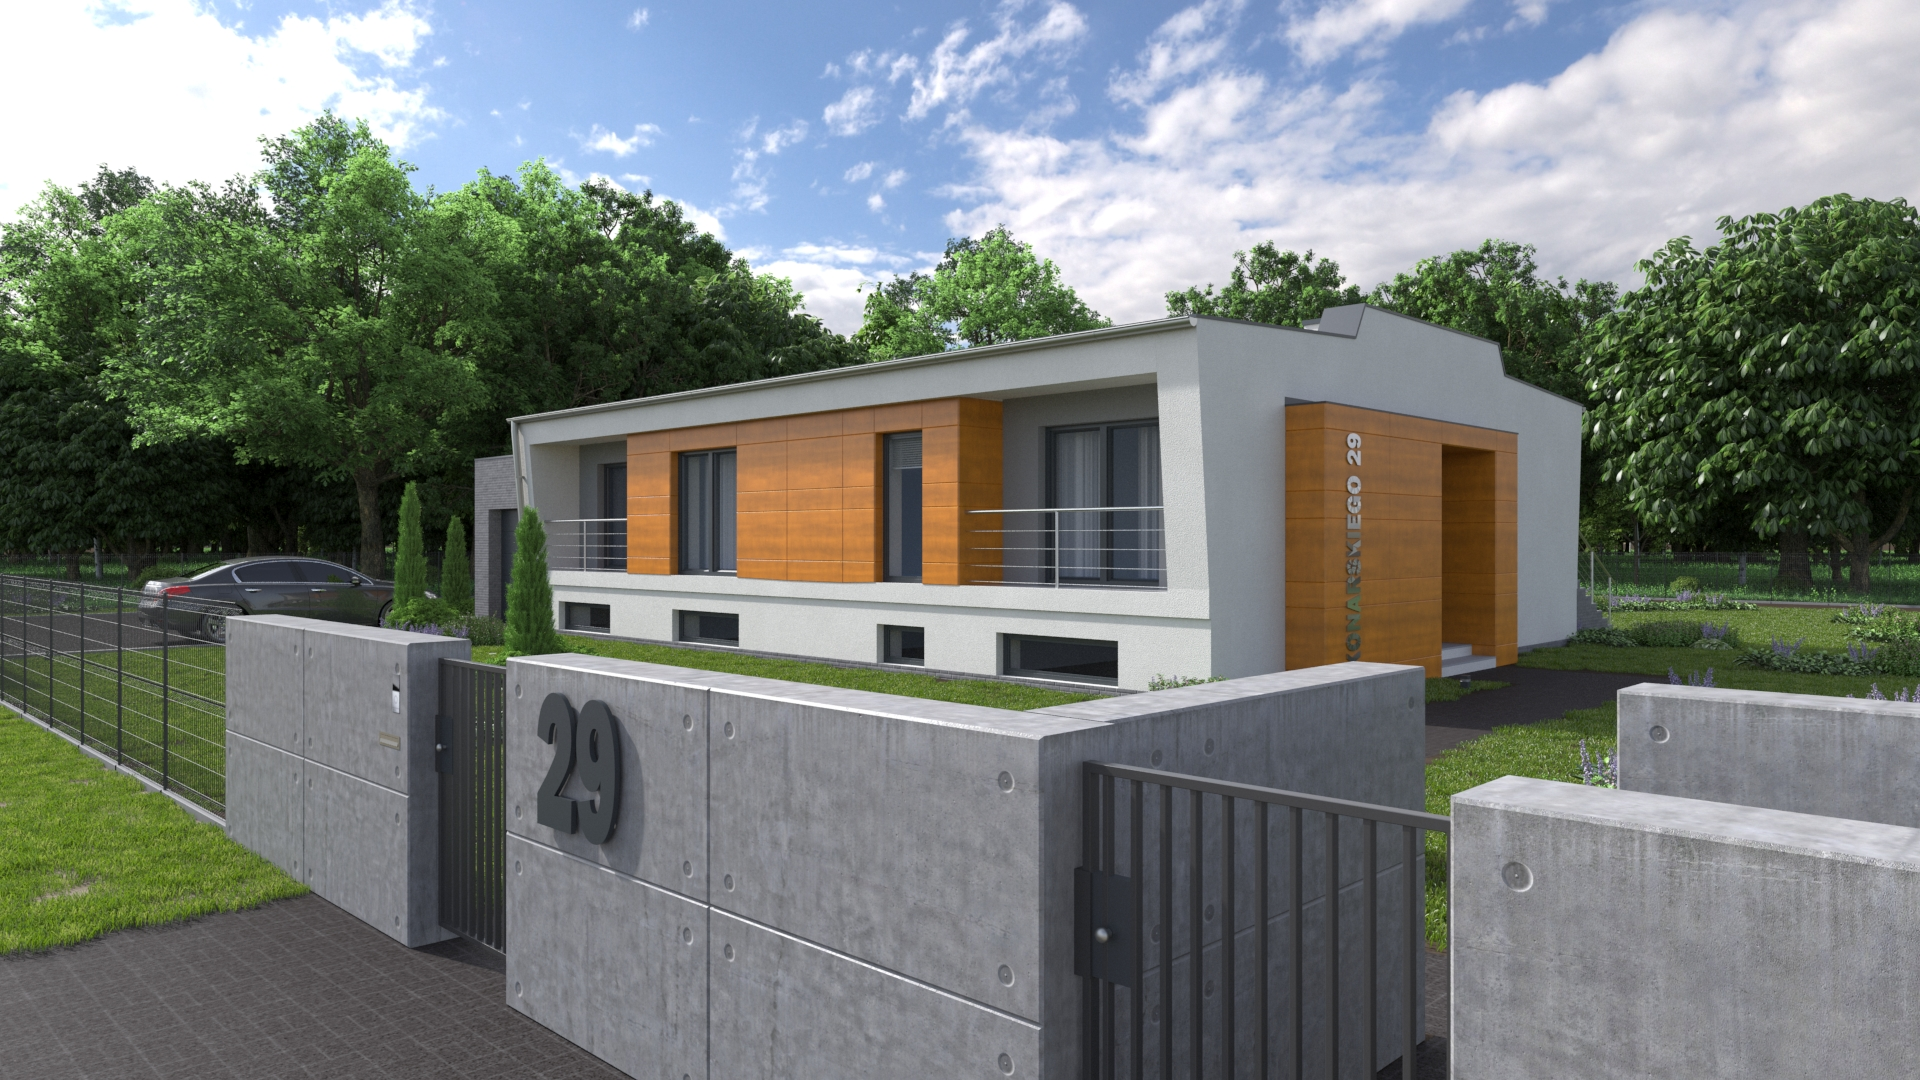 Architectural visualization of the east facade of a single-family house.  This rendering shows the front facade visible from the street side.